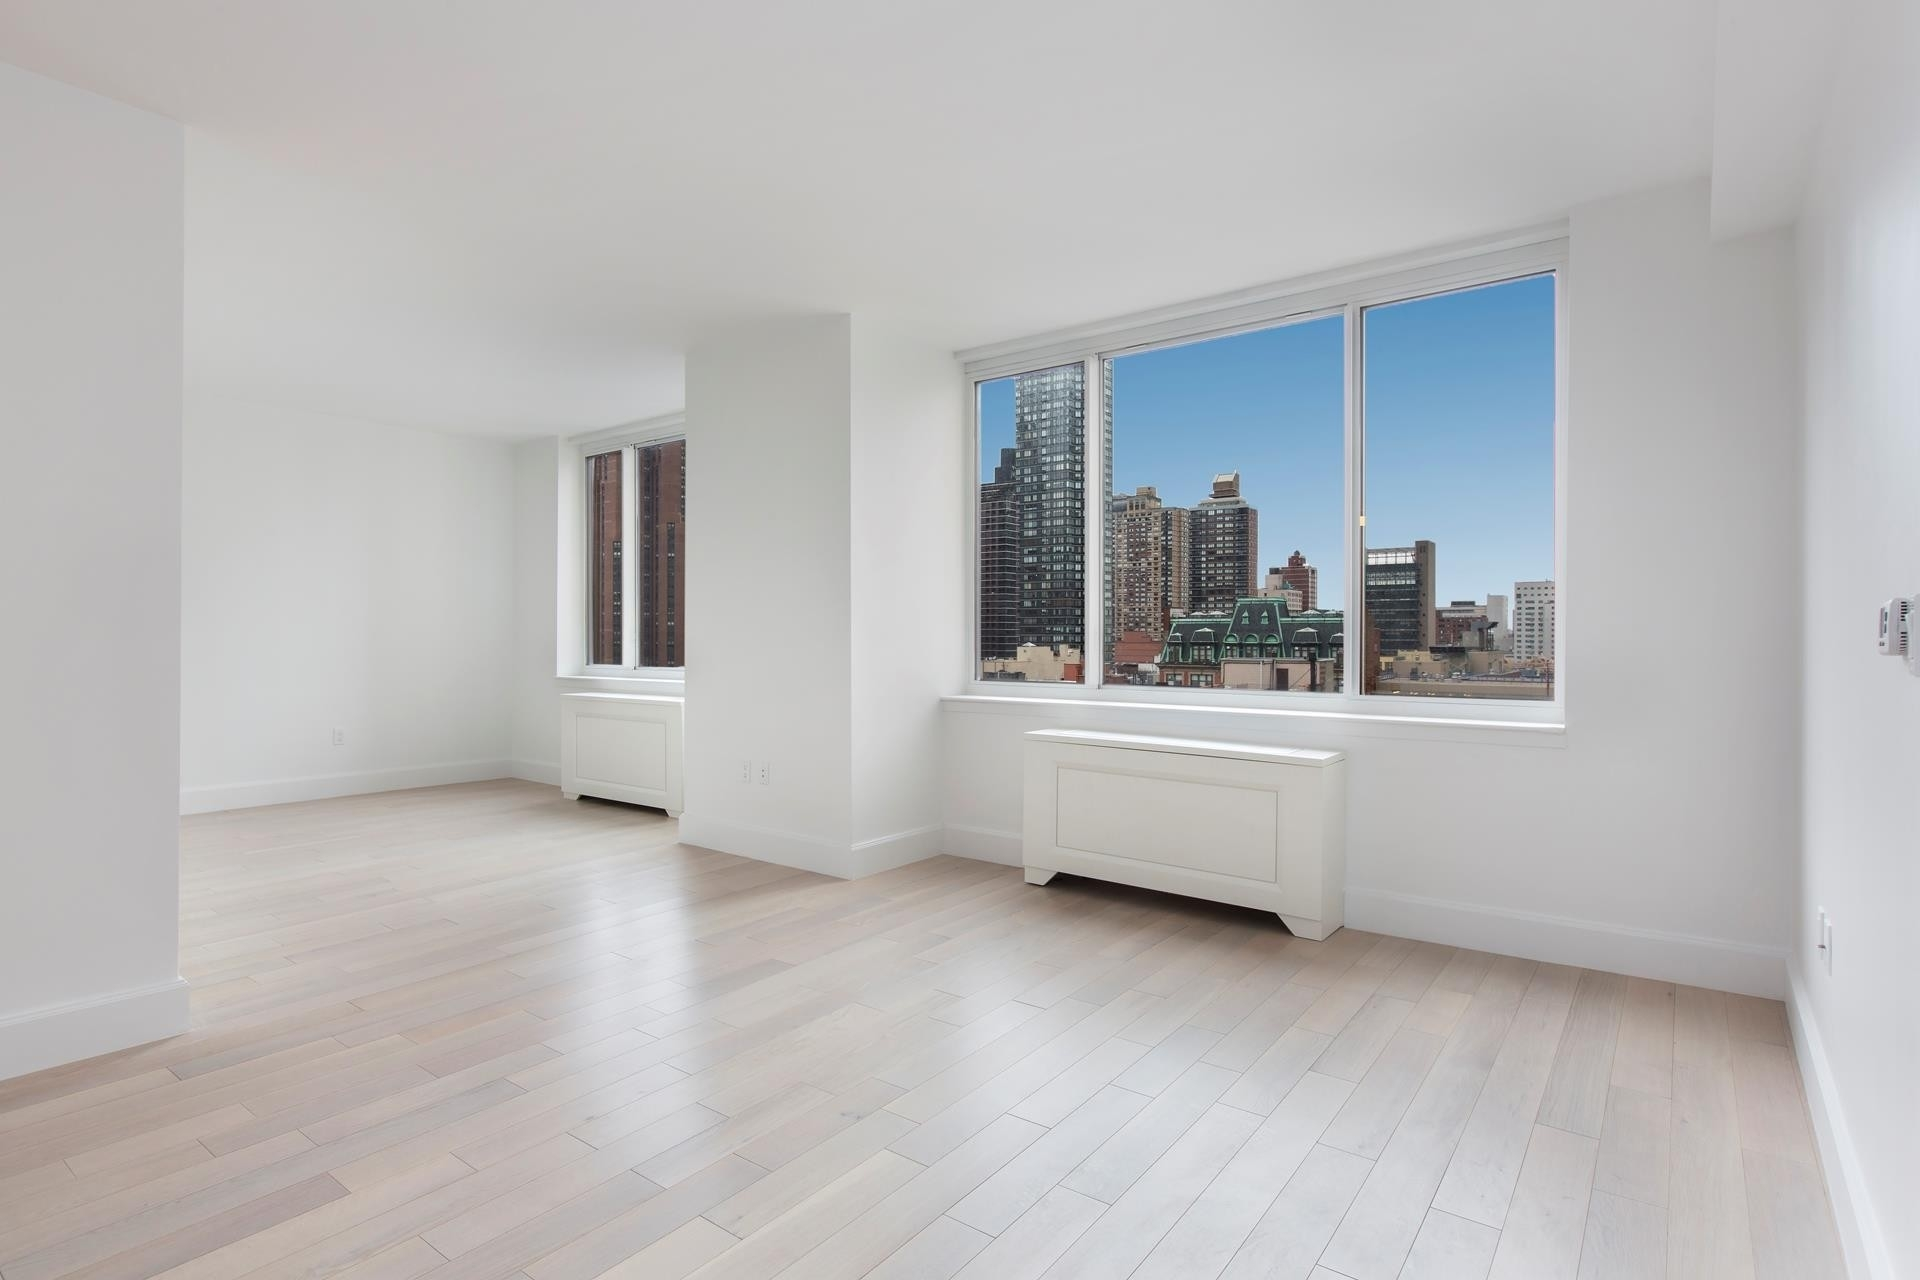 Property at 389 East 89th St, 18A Yorkville, New York, NY 10128